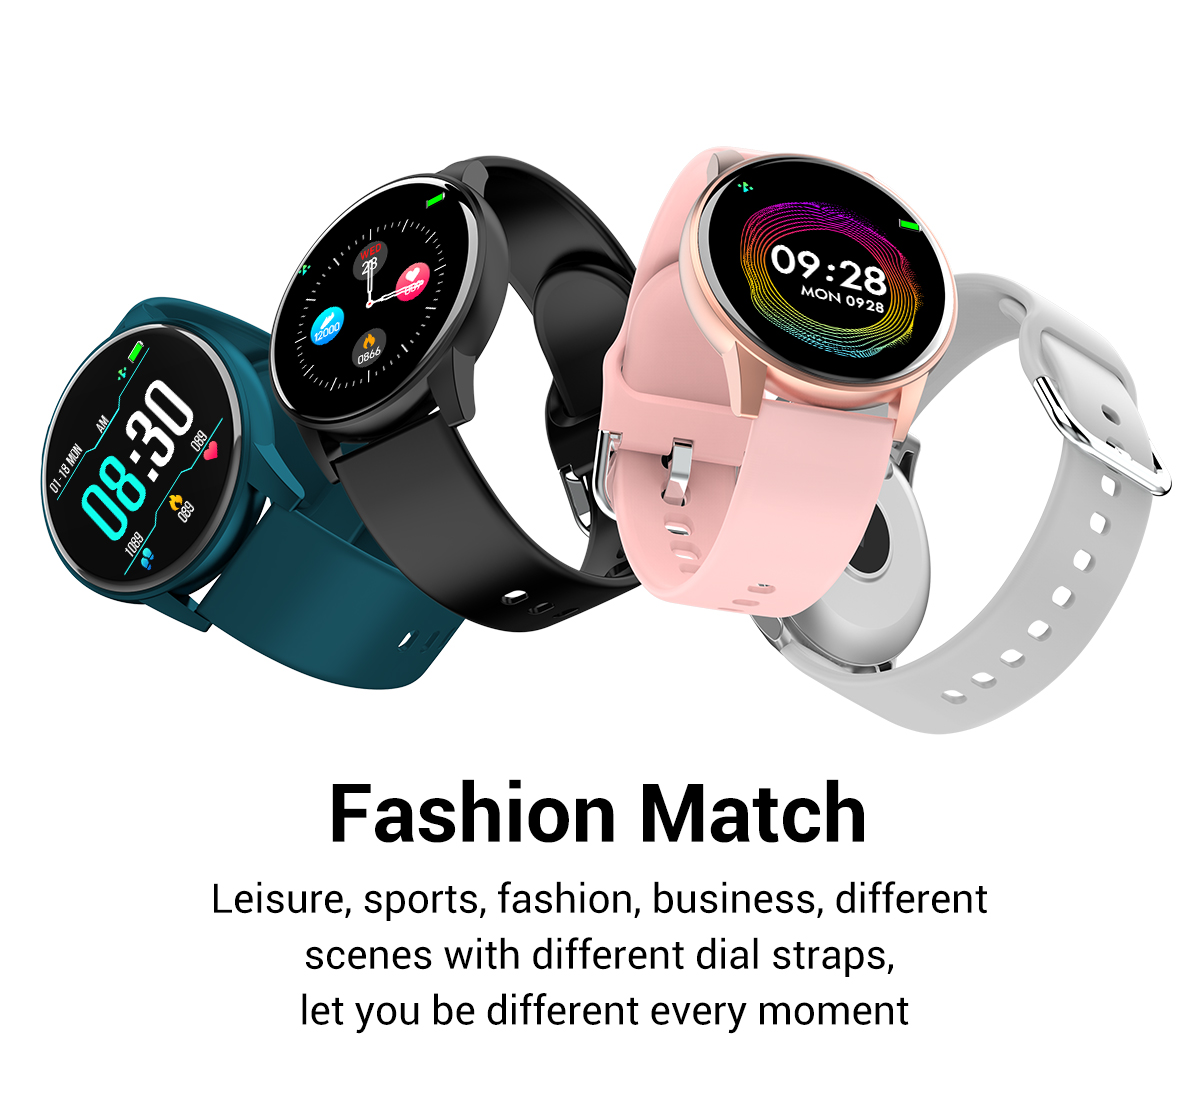 Fashionable smartwatches for men